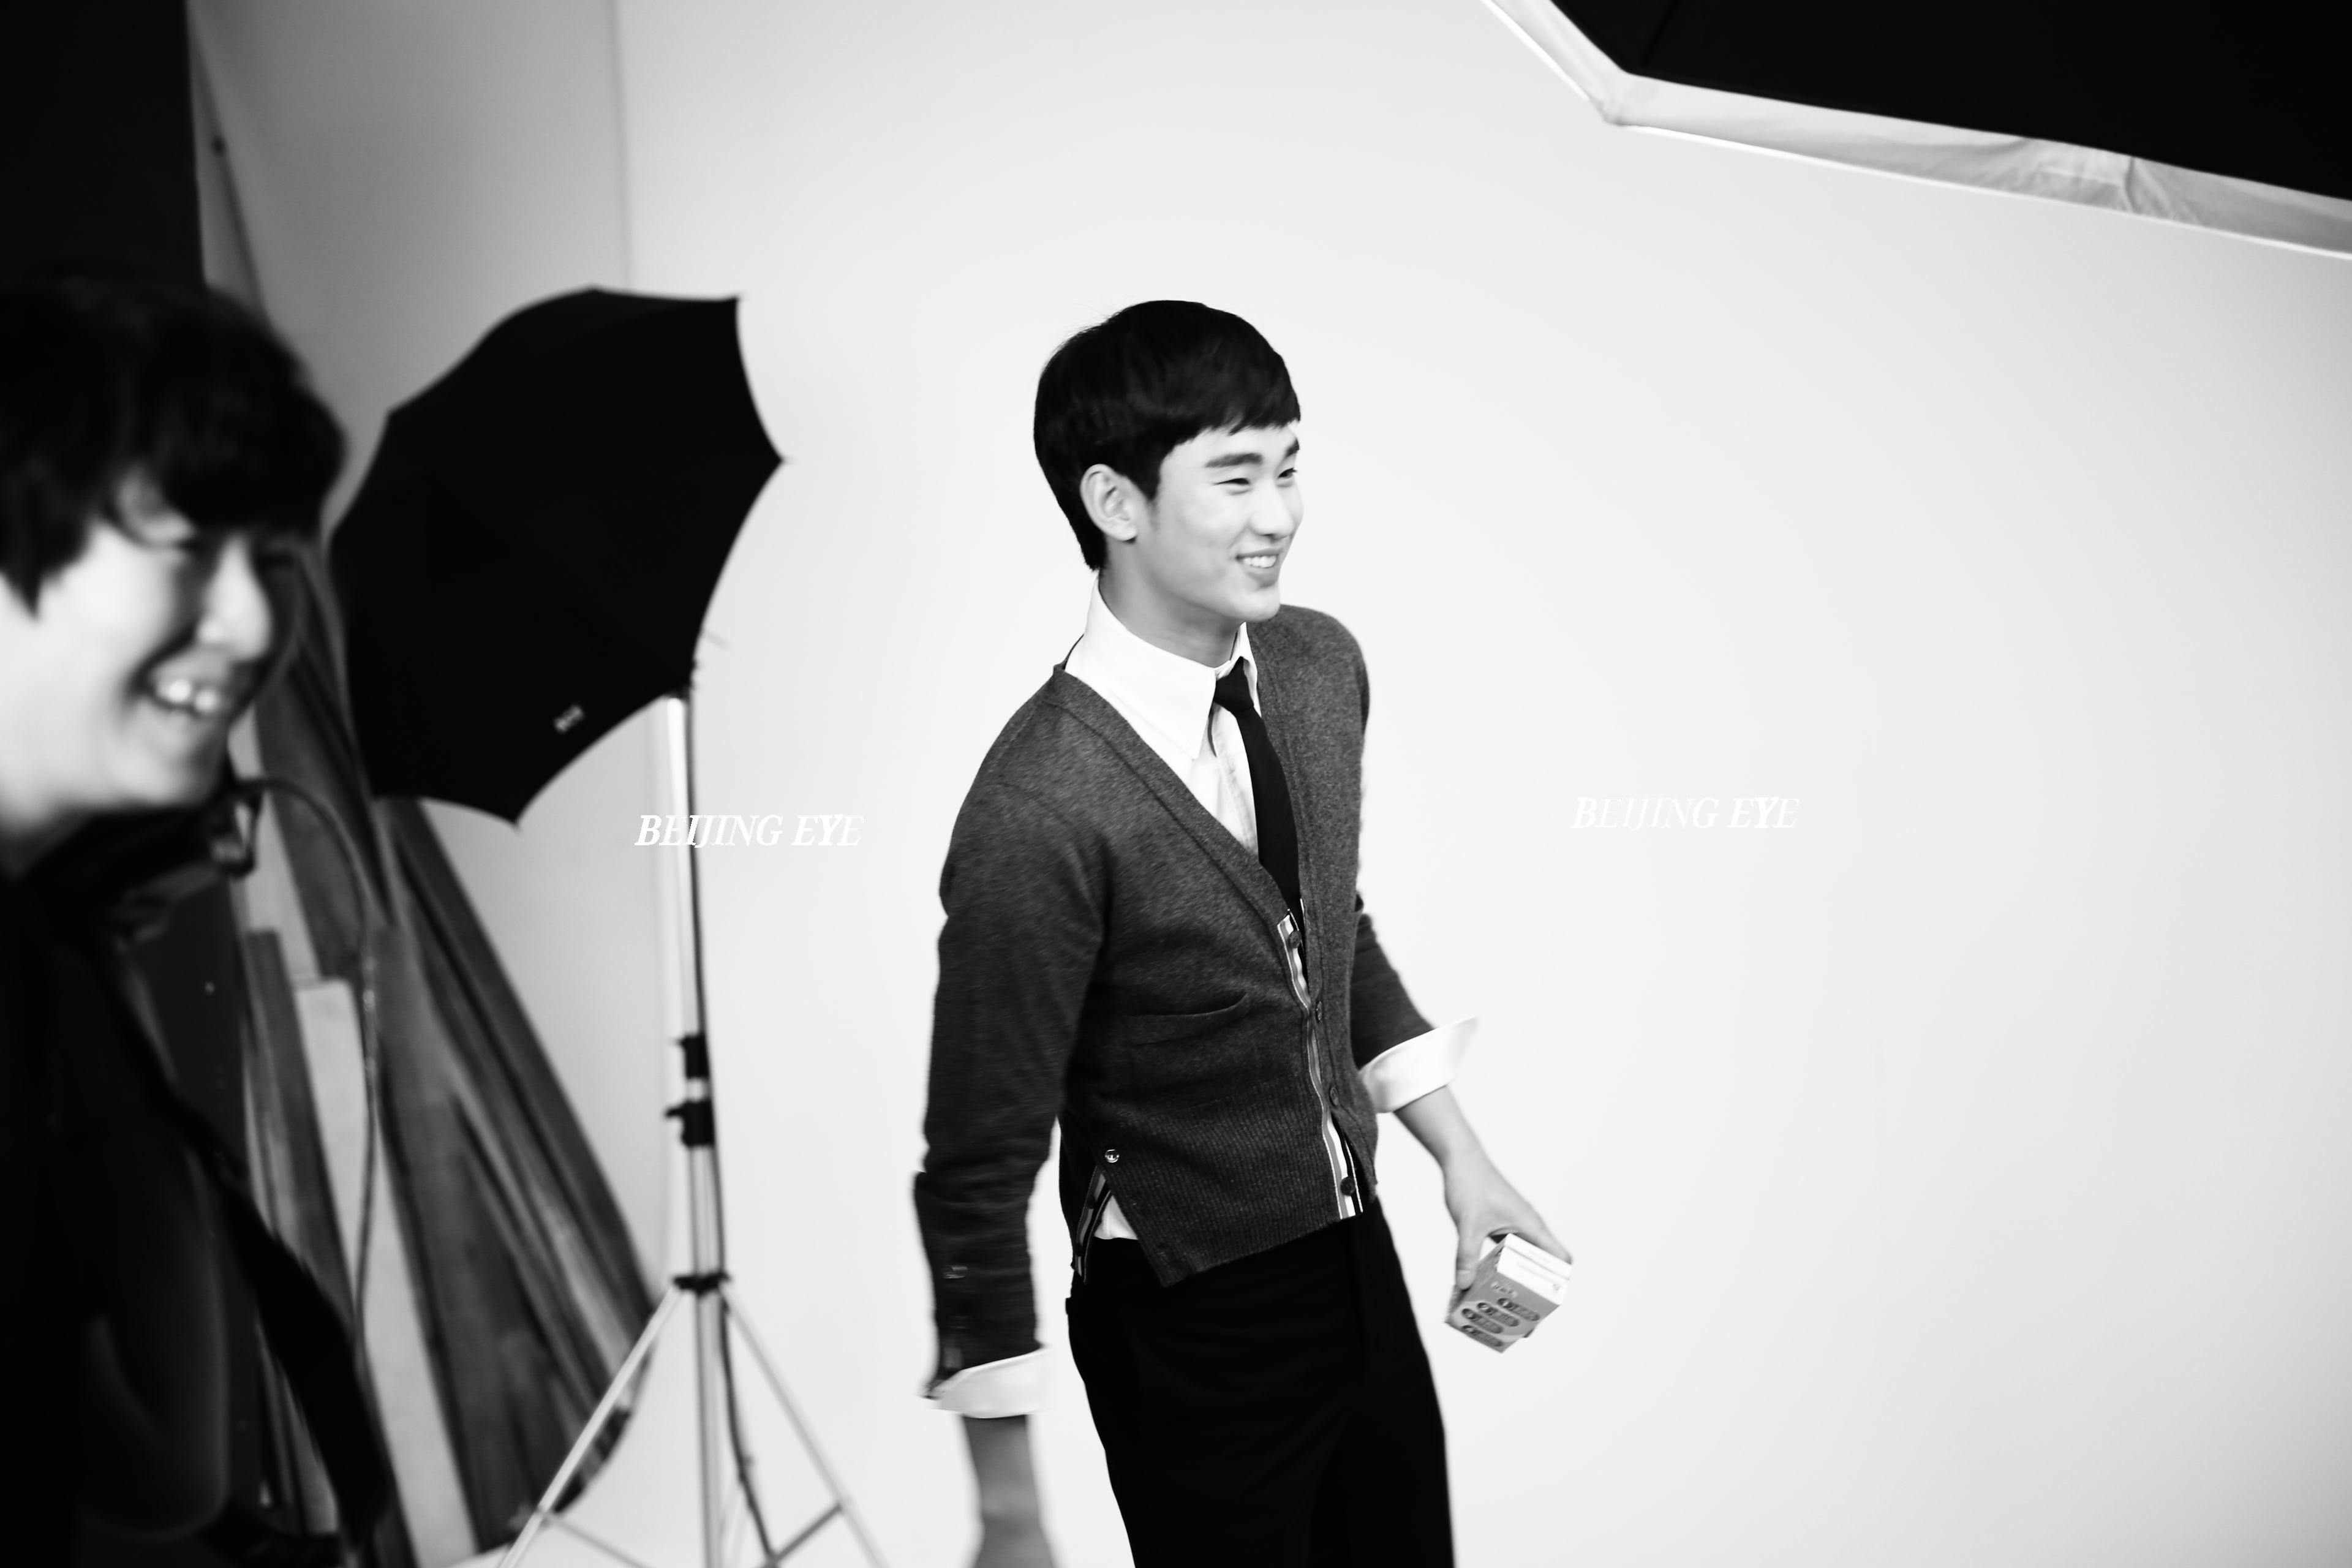 beijing-eye-produciton-yili-milk-korea-kim-soo-hyun-making-of 3